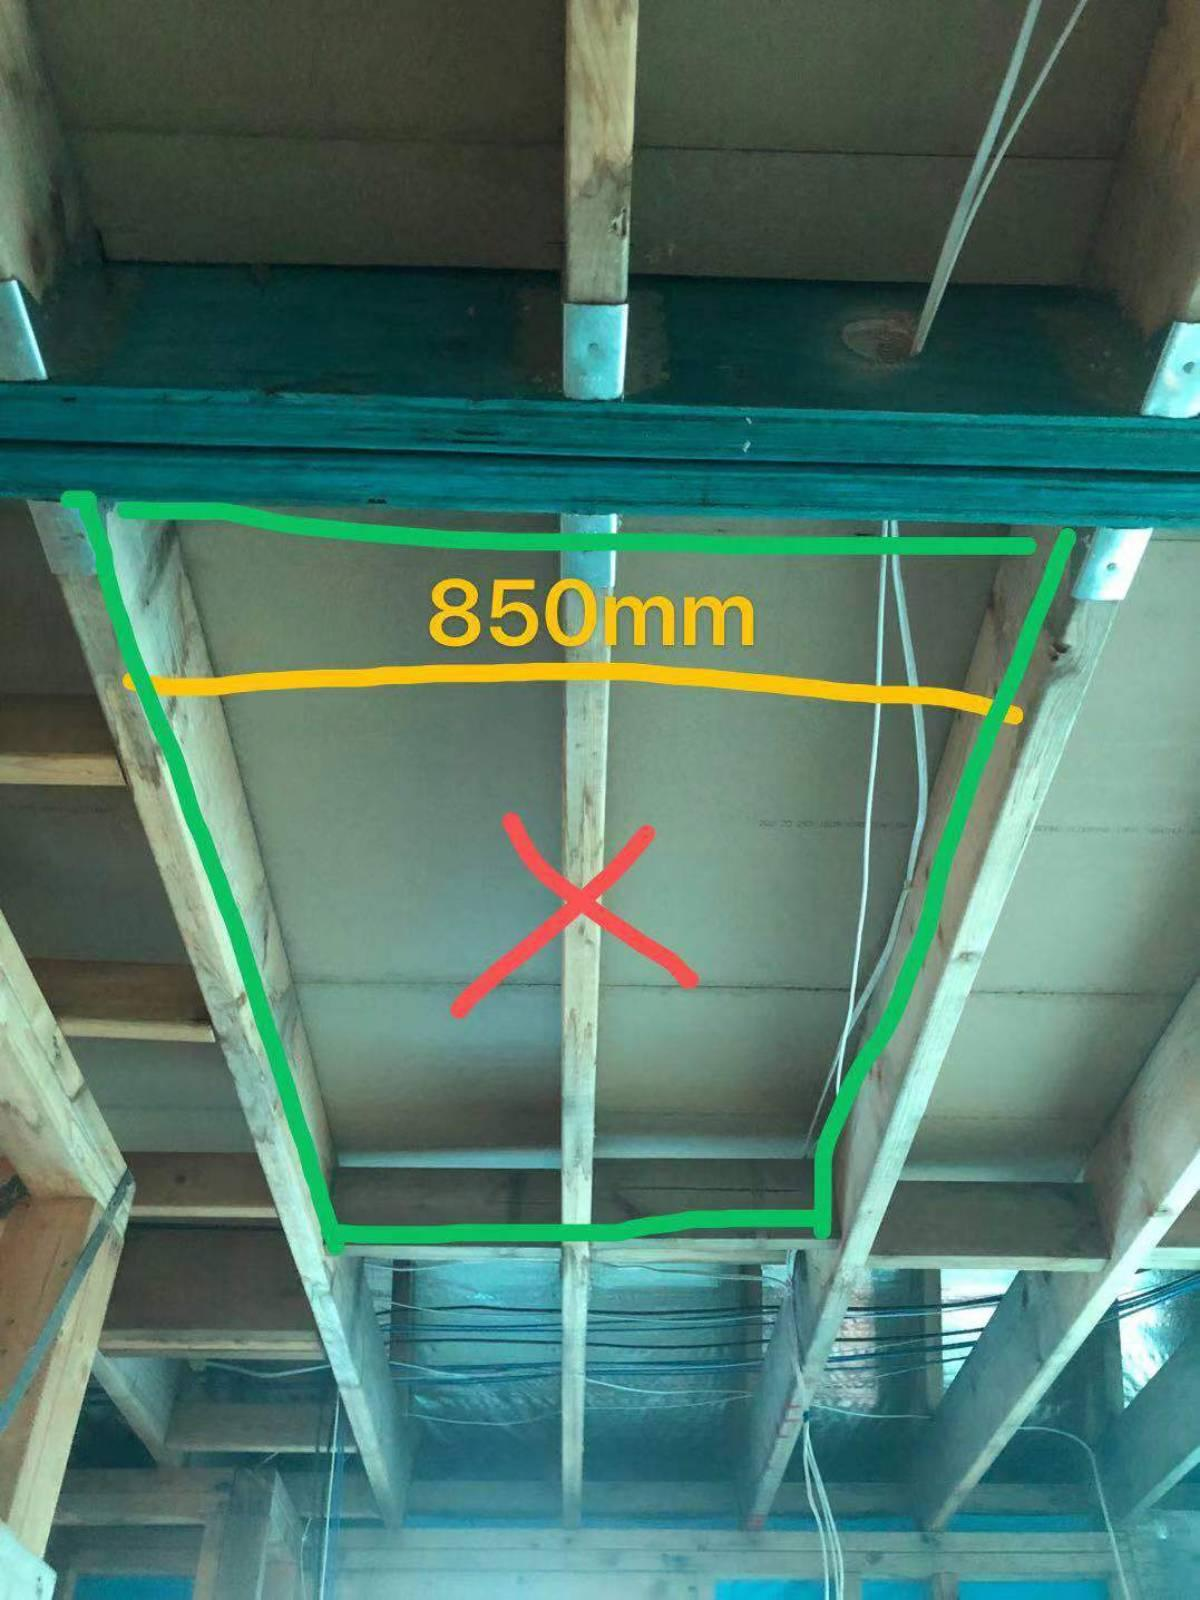 Advice required to remove one joist